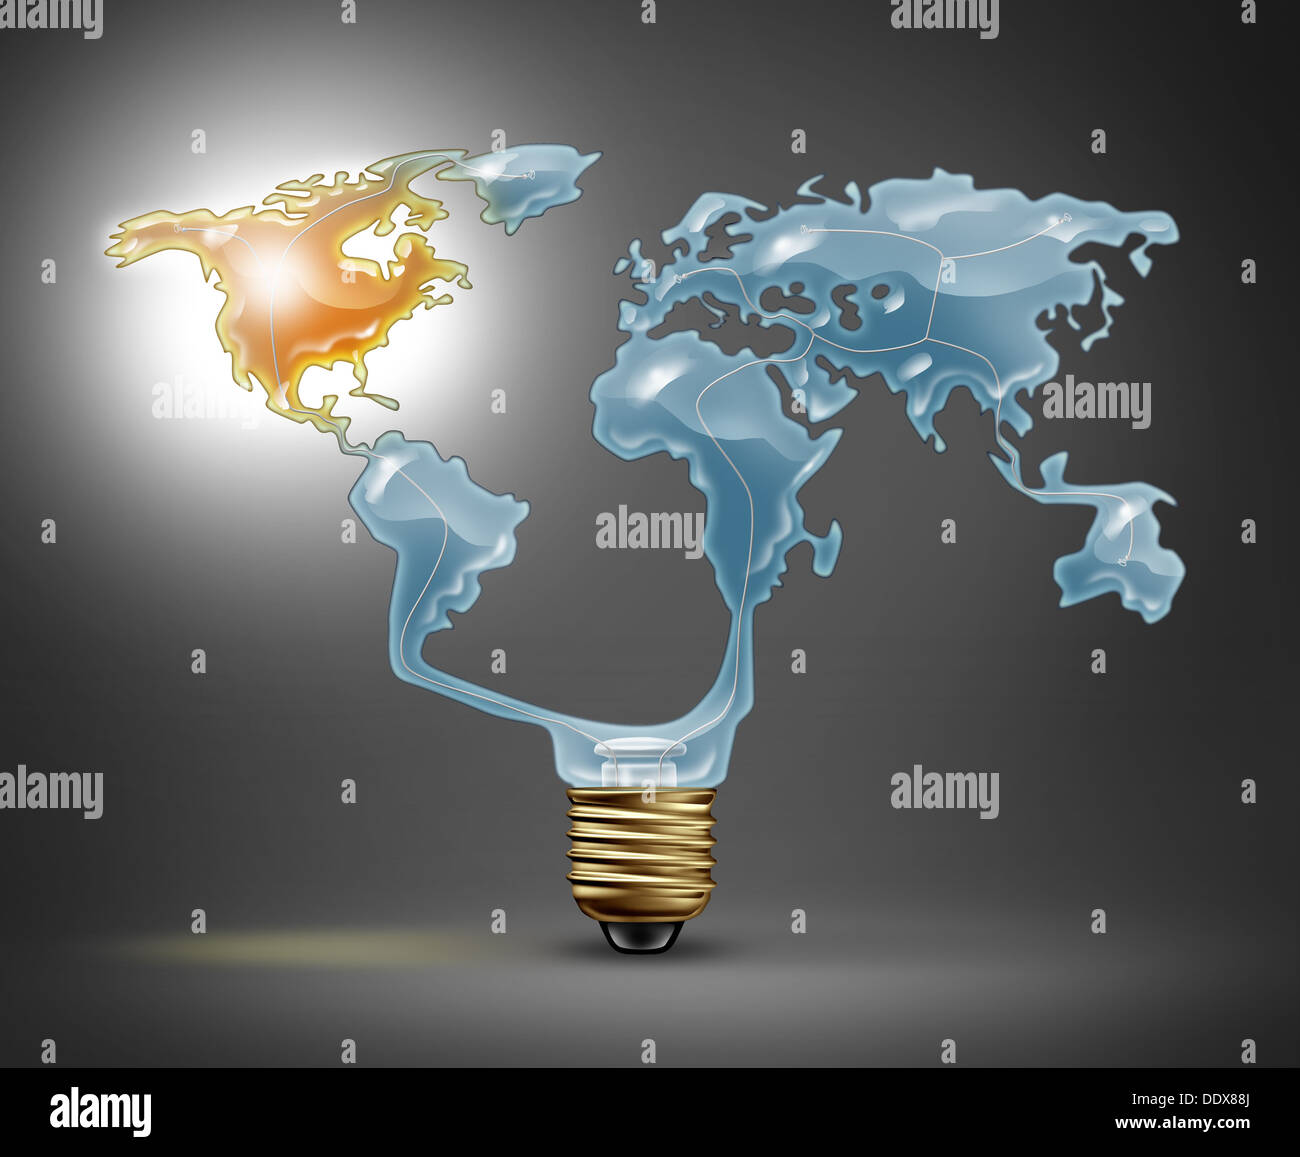 North america recovery with a light bulb in the shape of the world north america recovery with a light bulb in the shape of the world map representing the global economy with the northern american continent illuminated with gumiabroncs Images